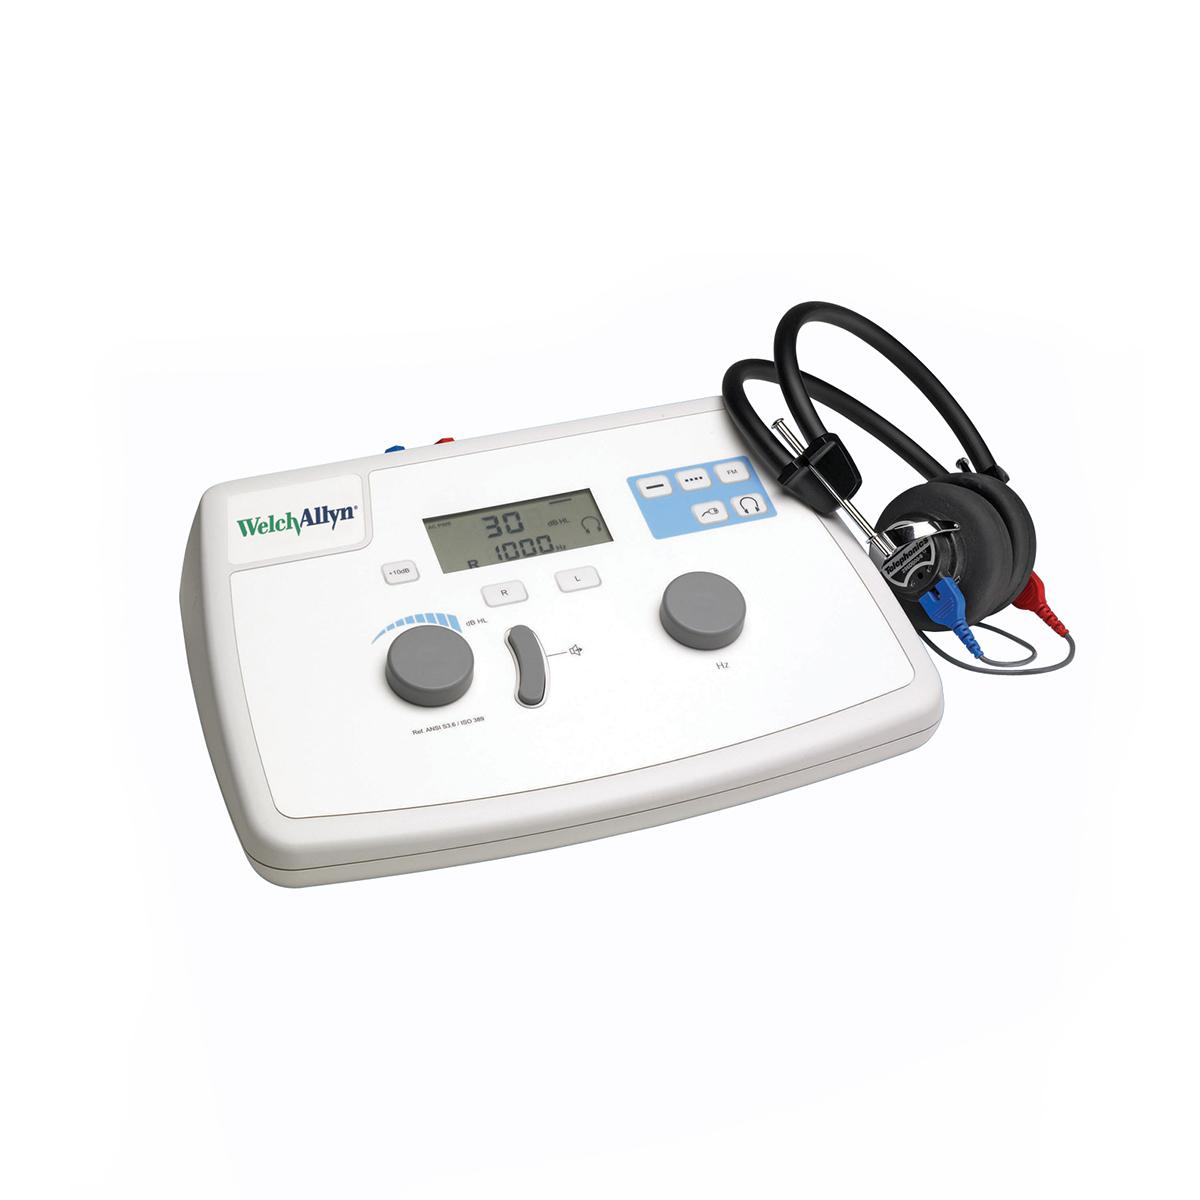 The table-top Welch Allyn AM 282 audiometer has knobs for frequency and intensity selection and an easy-to-read LCD screen.